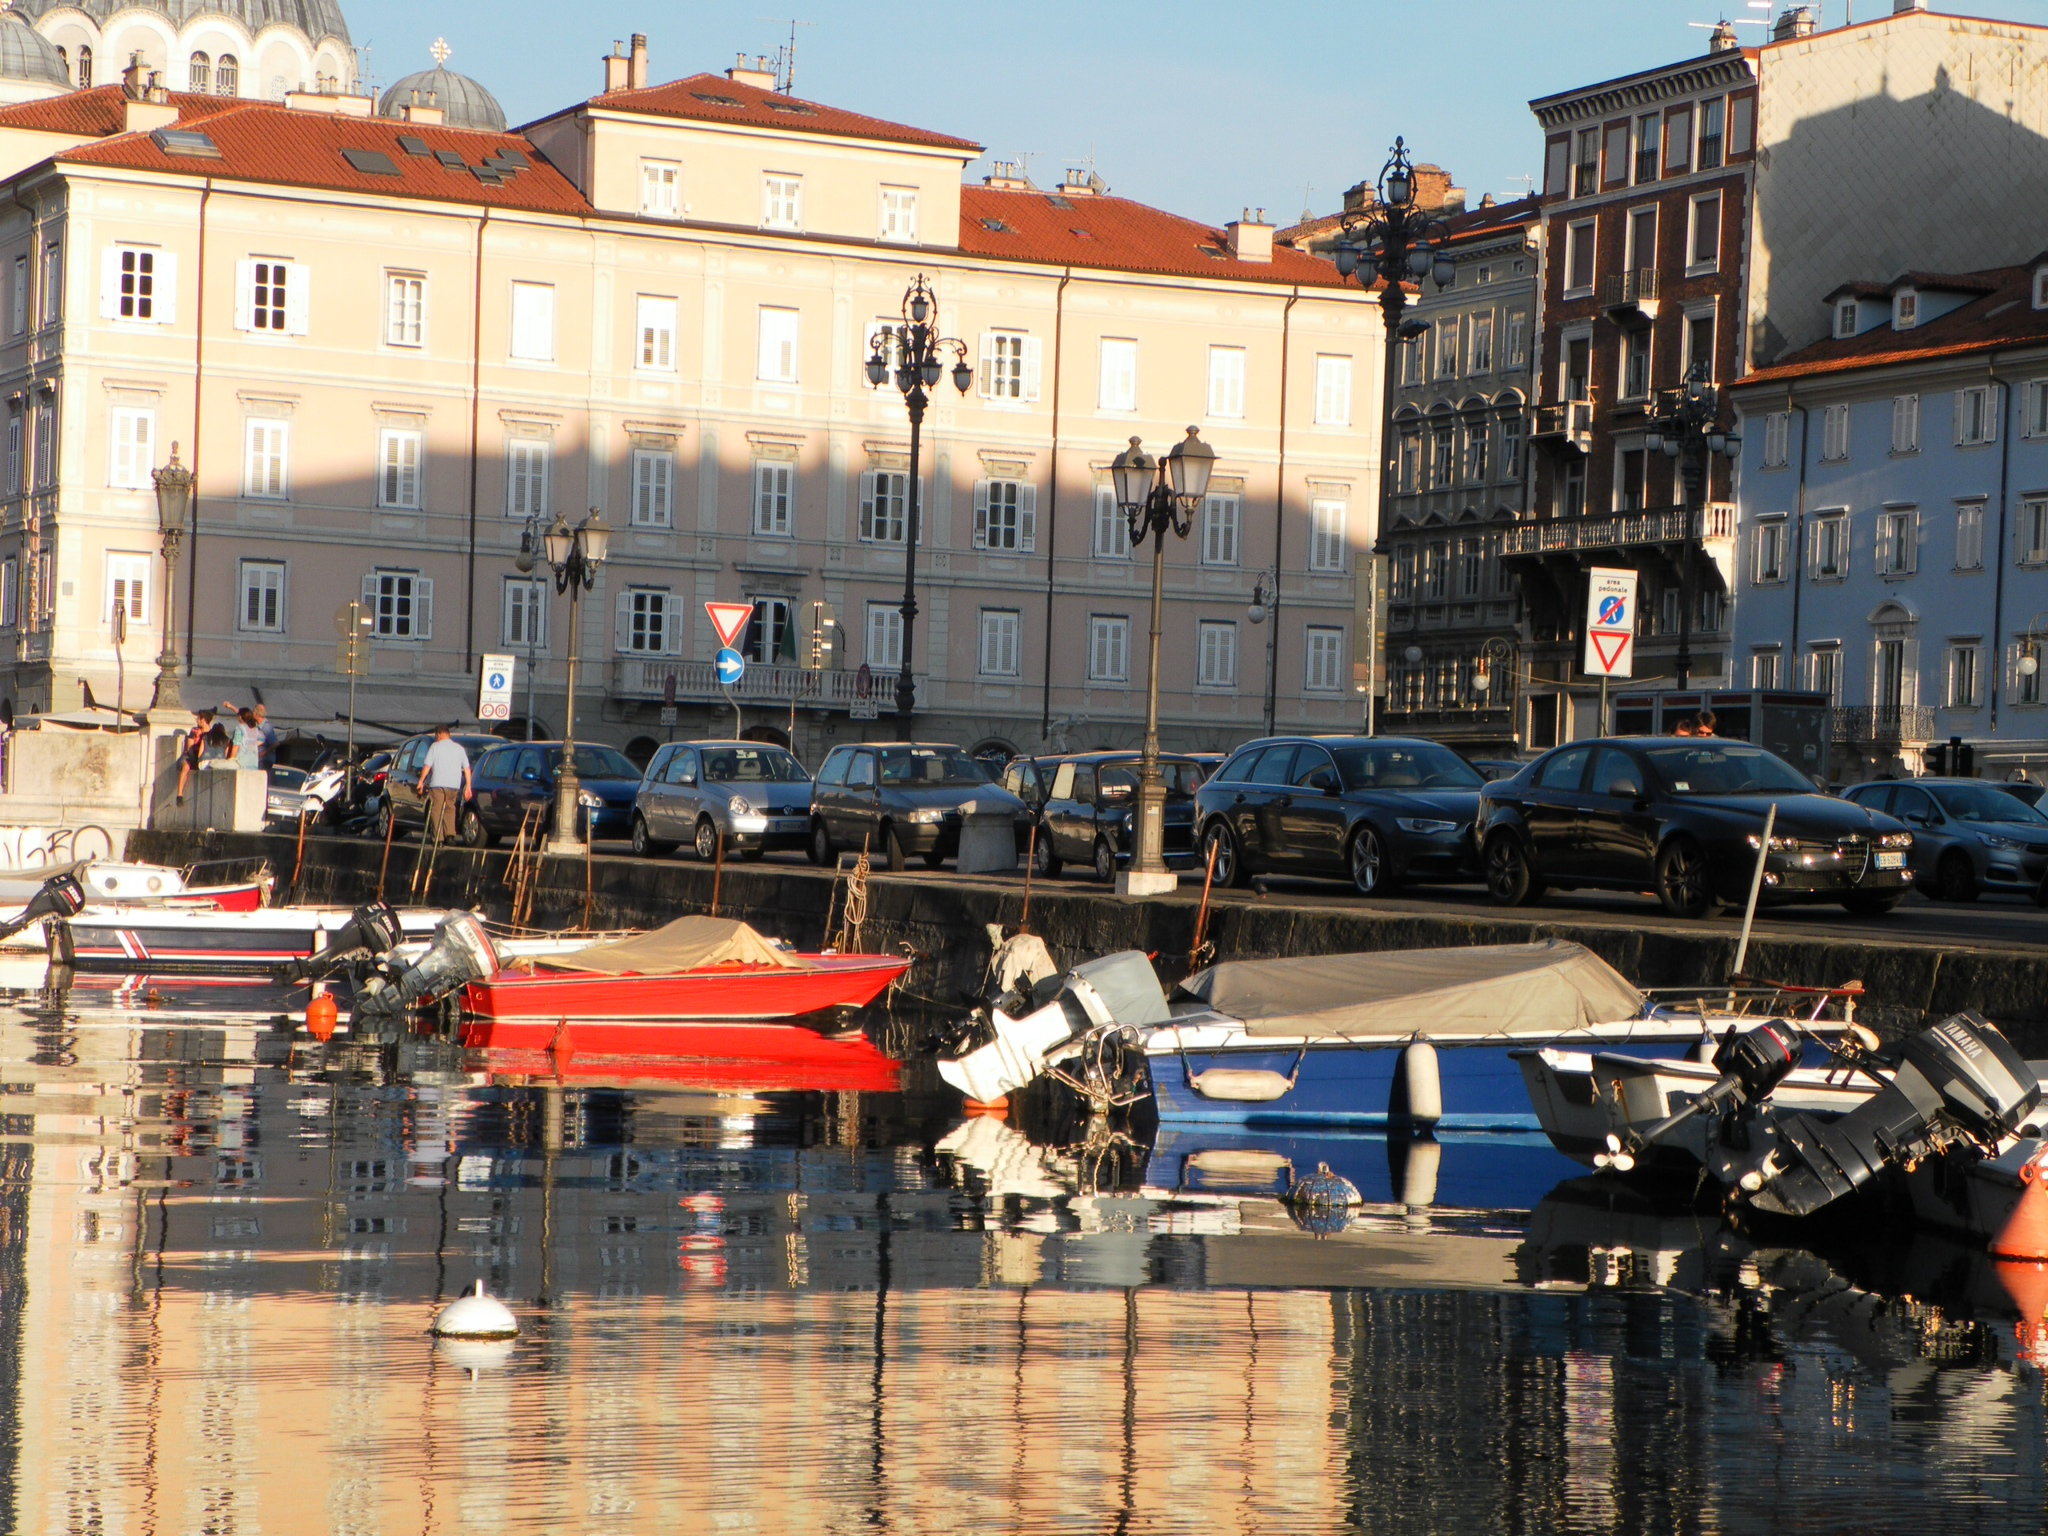 Canal Grande looking toward the dome of San Spiridone, the Serbian Orthodox Church in trieste, Italy